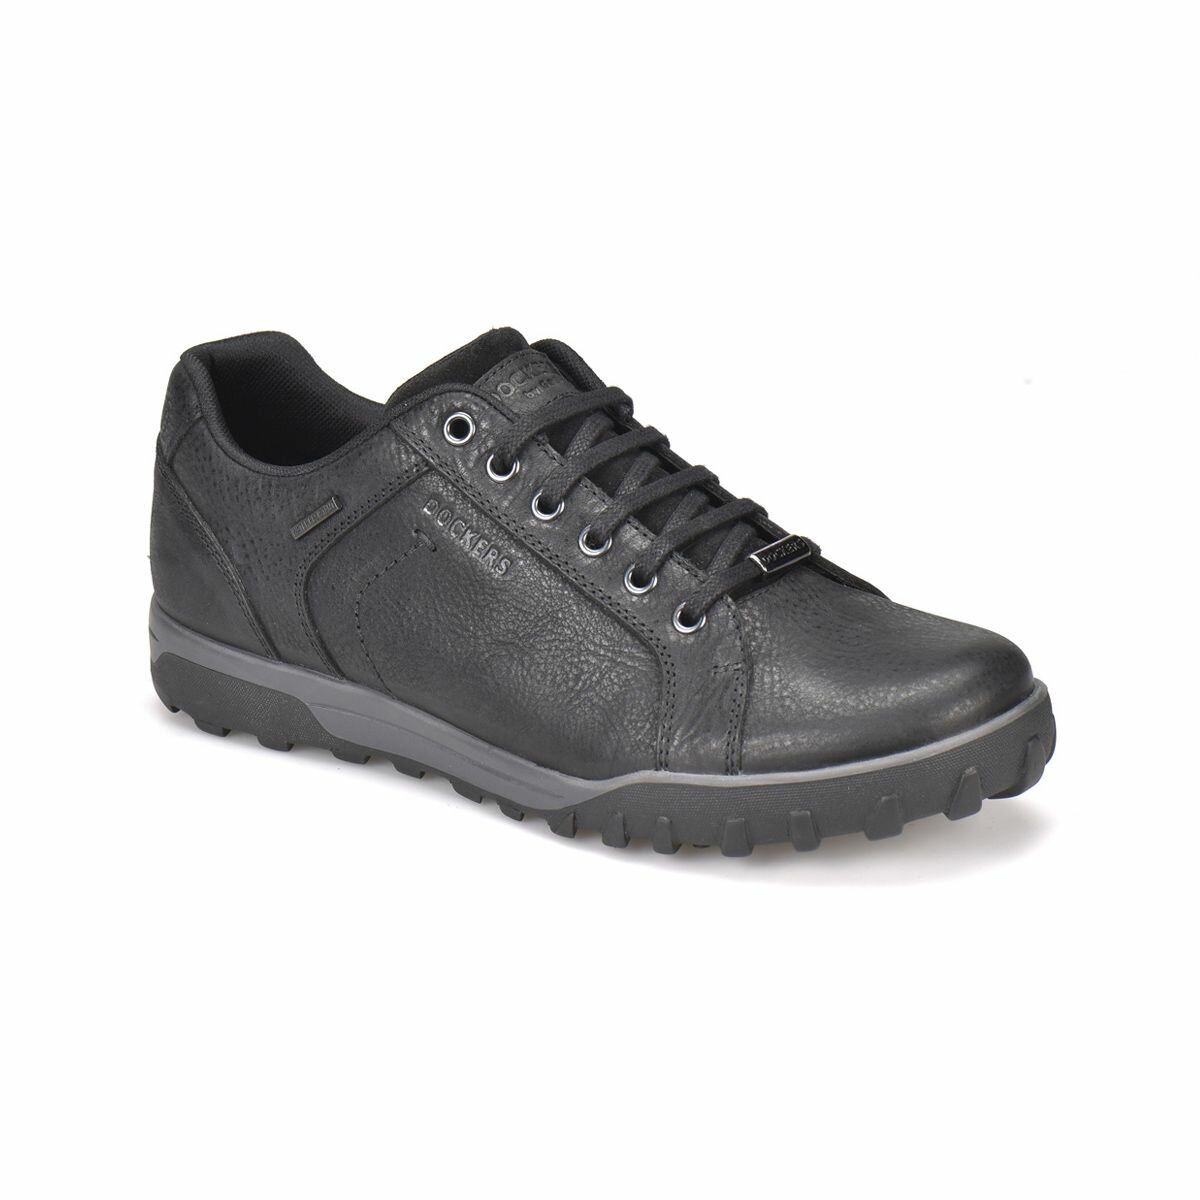 FLO 225006 Black Men Casual Shoes By Dockers The Gerle